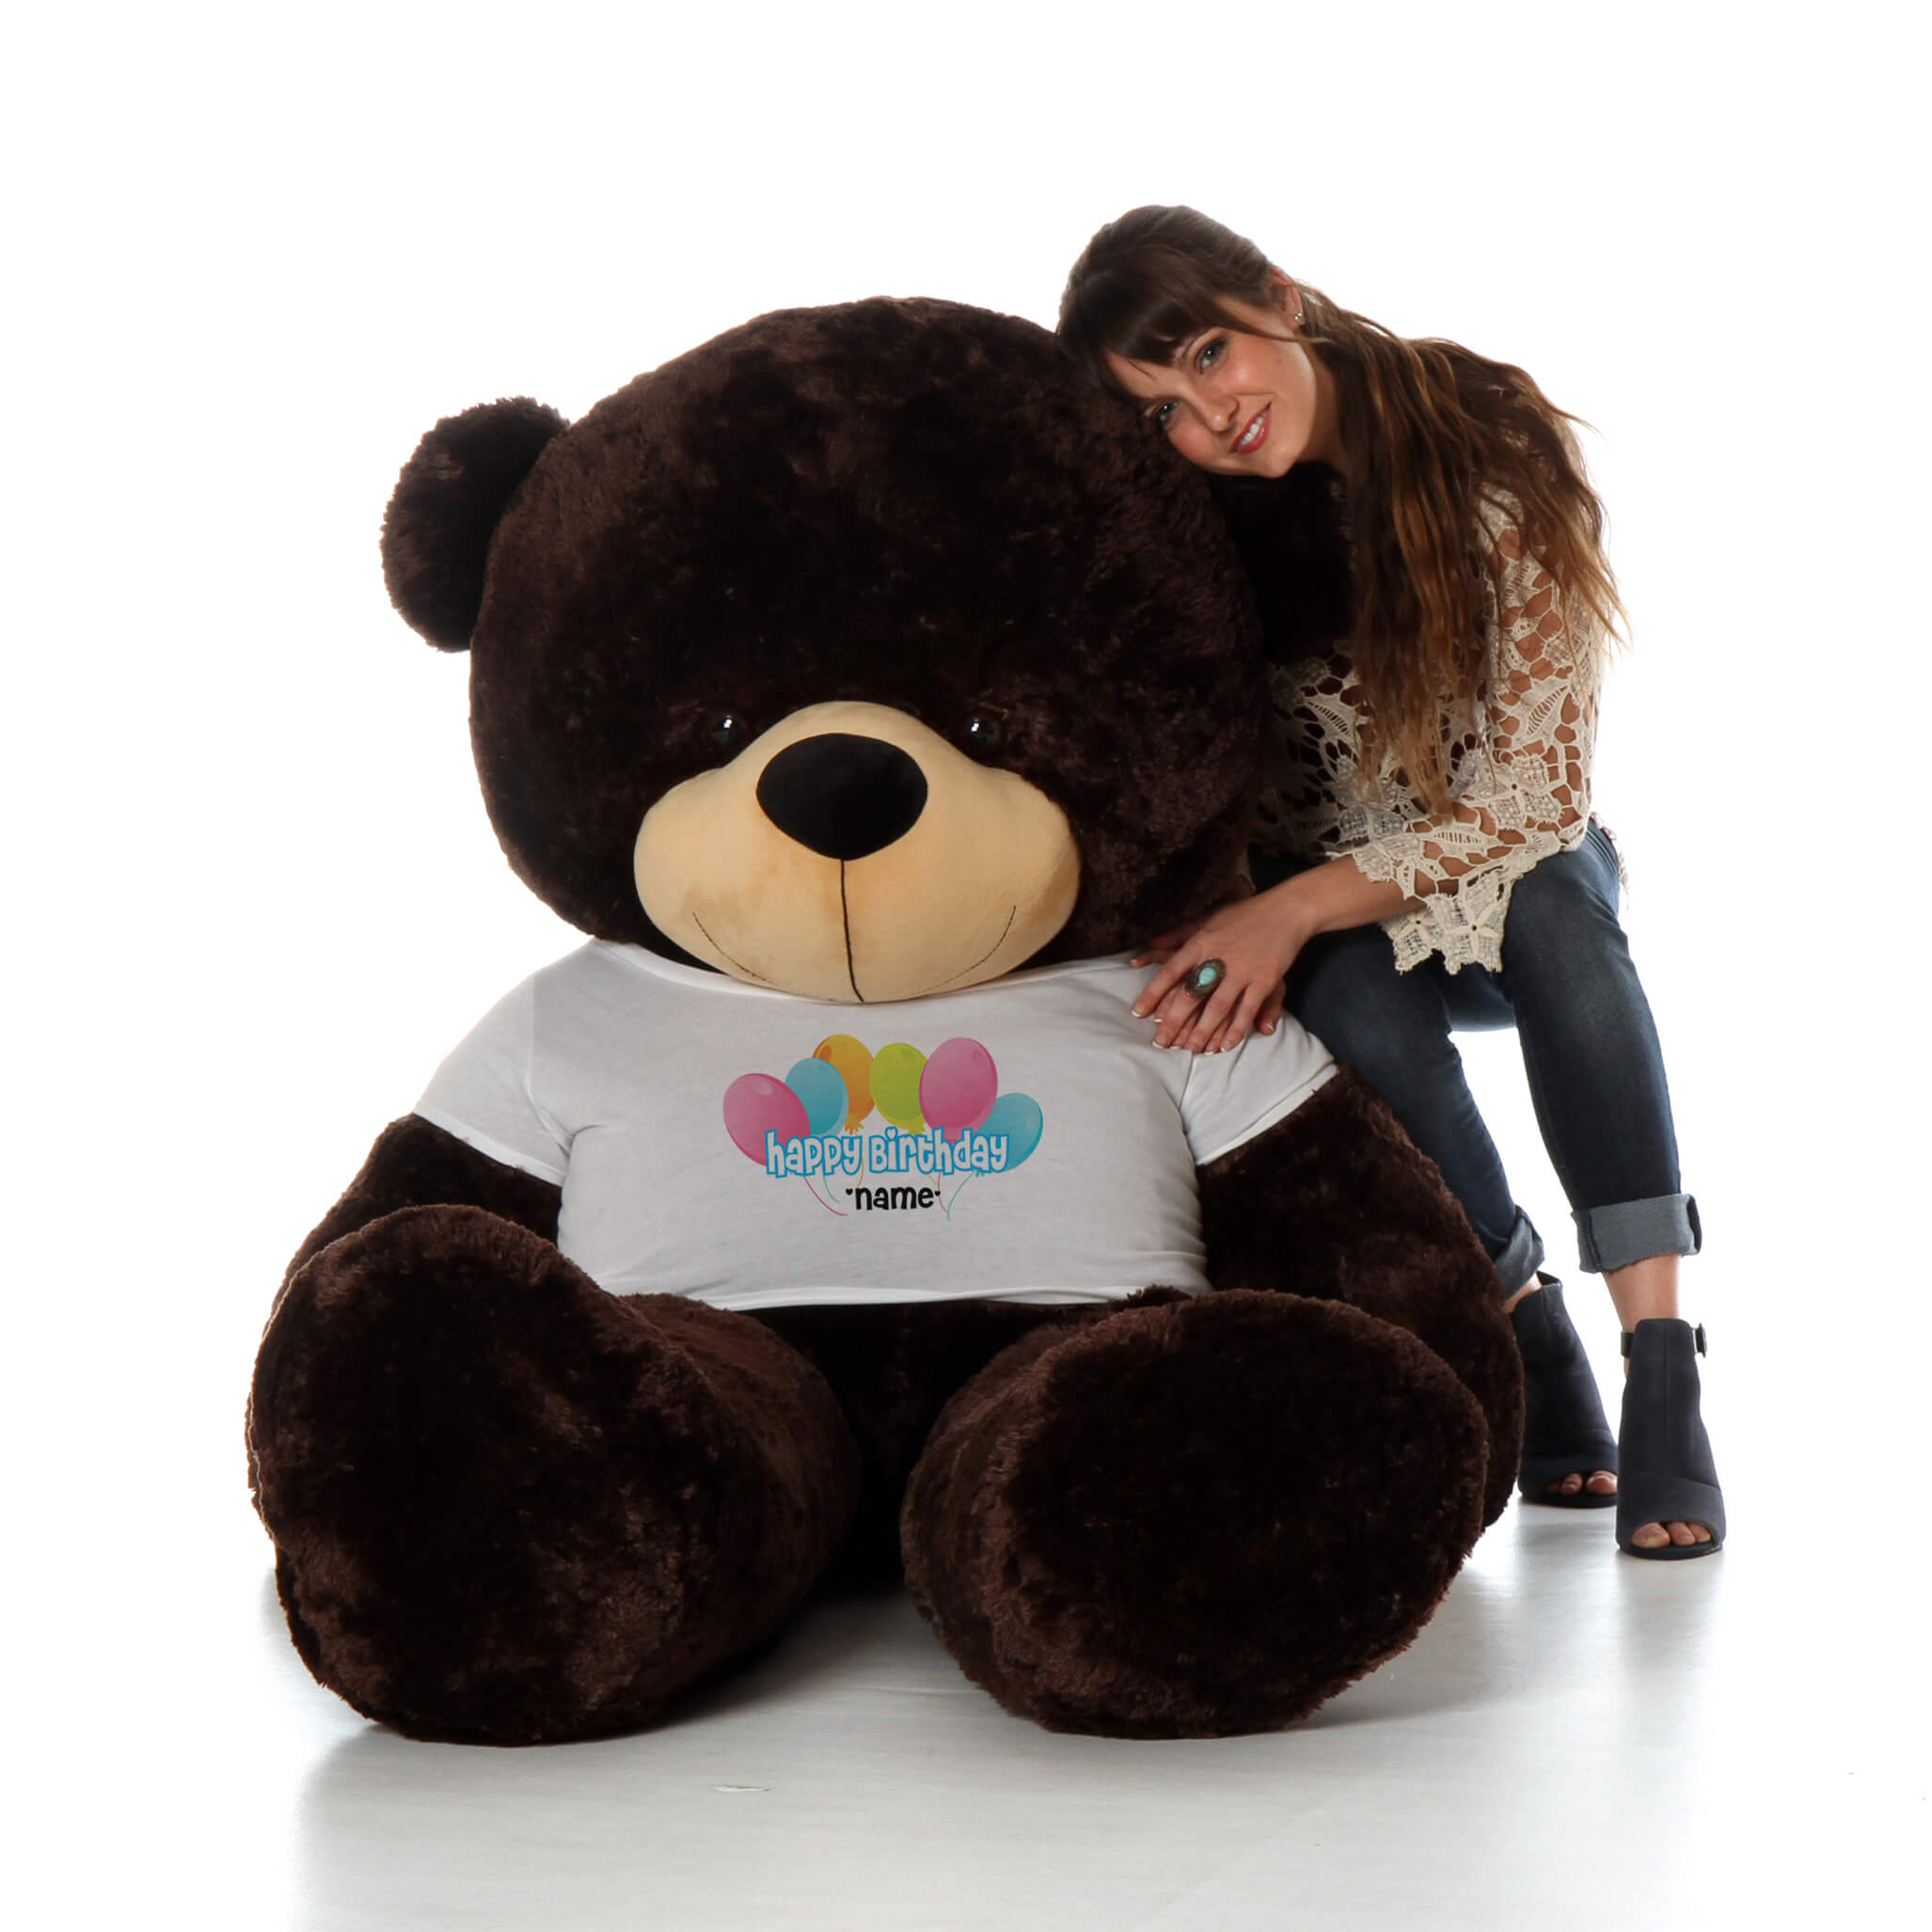 72in-brownie-cuddles-chocolate-giant-teddy-in-happy-birthday-balloons-t-shirt1.jpg